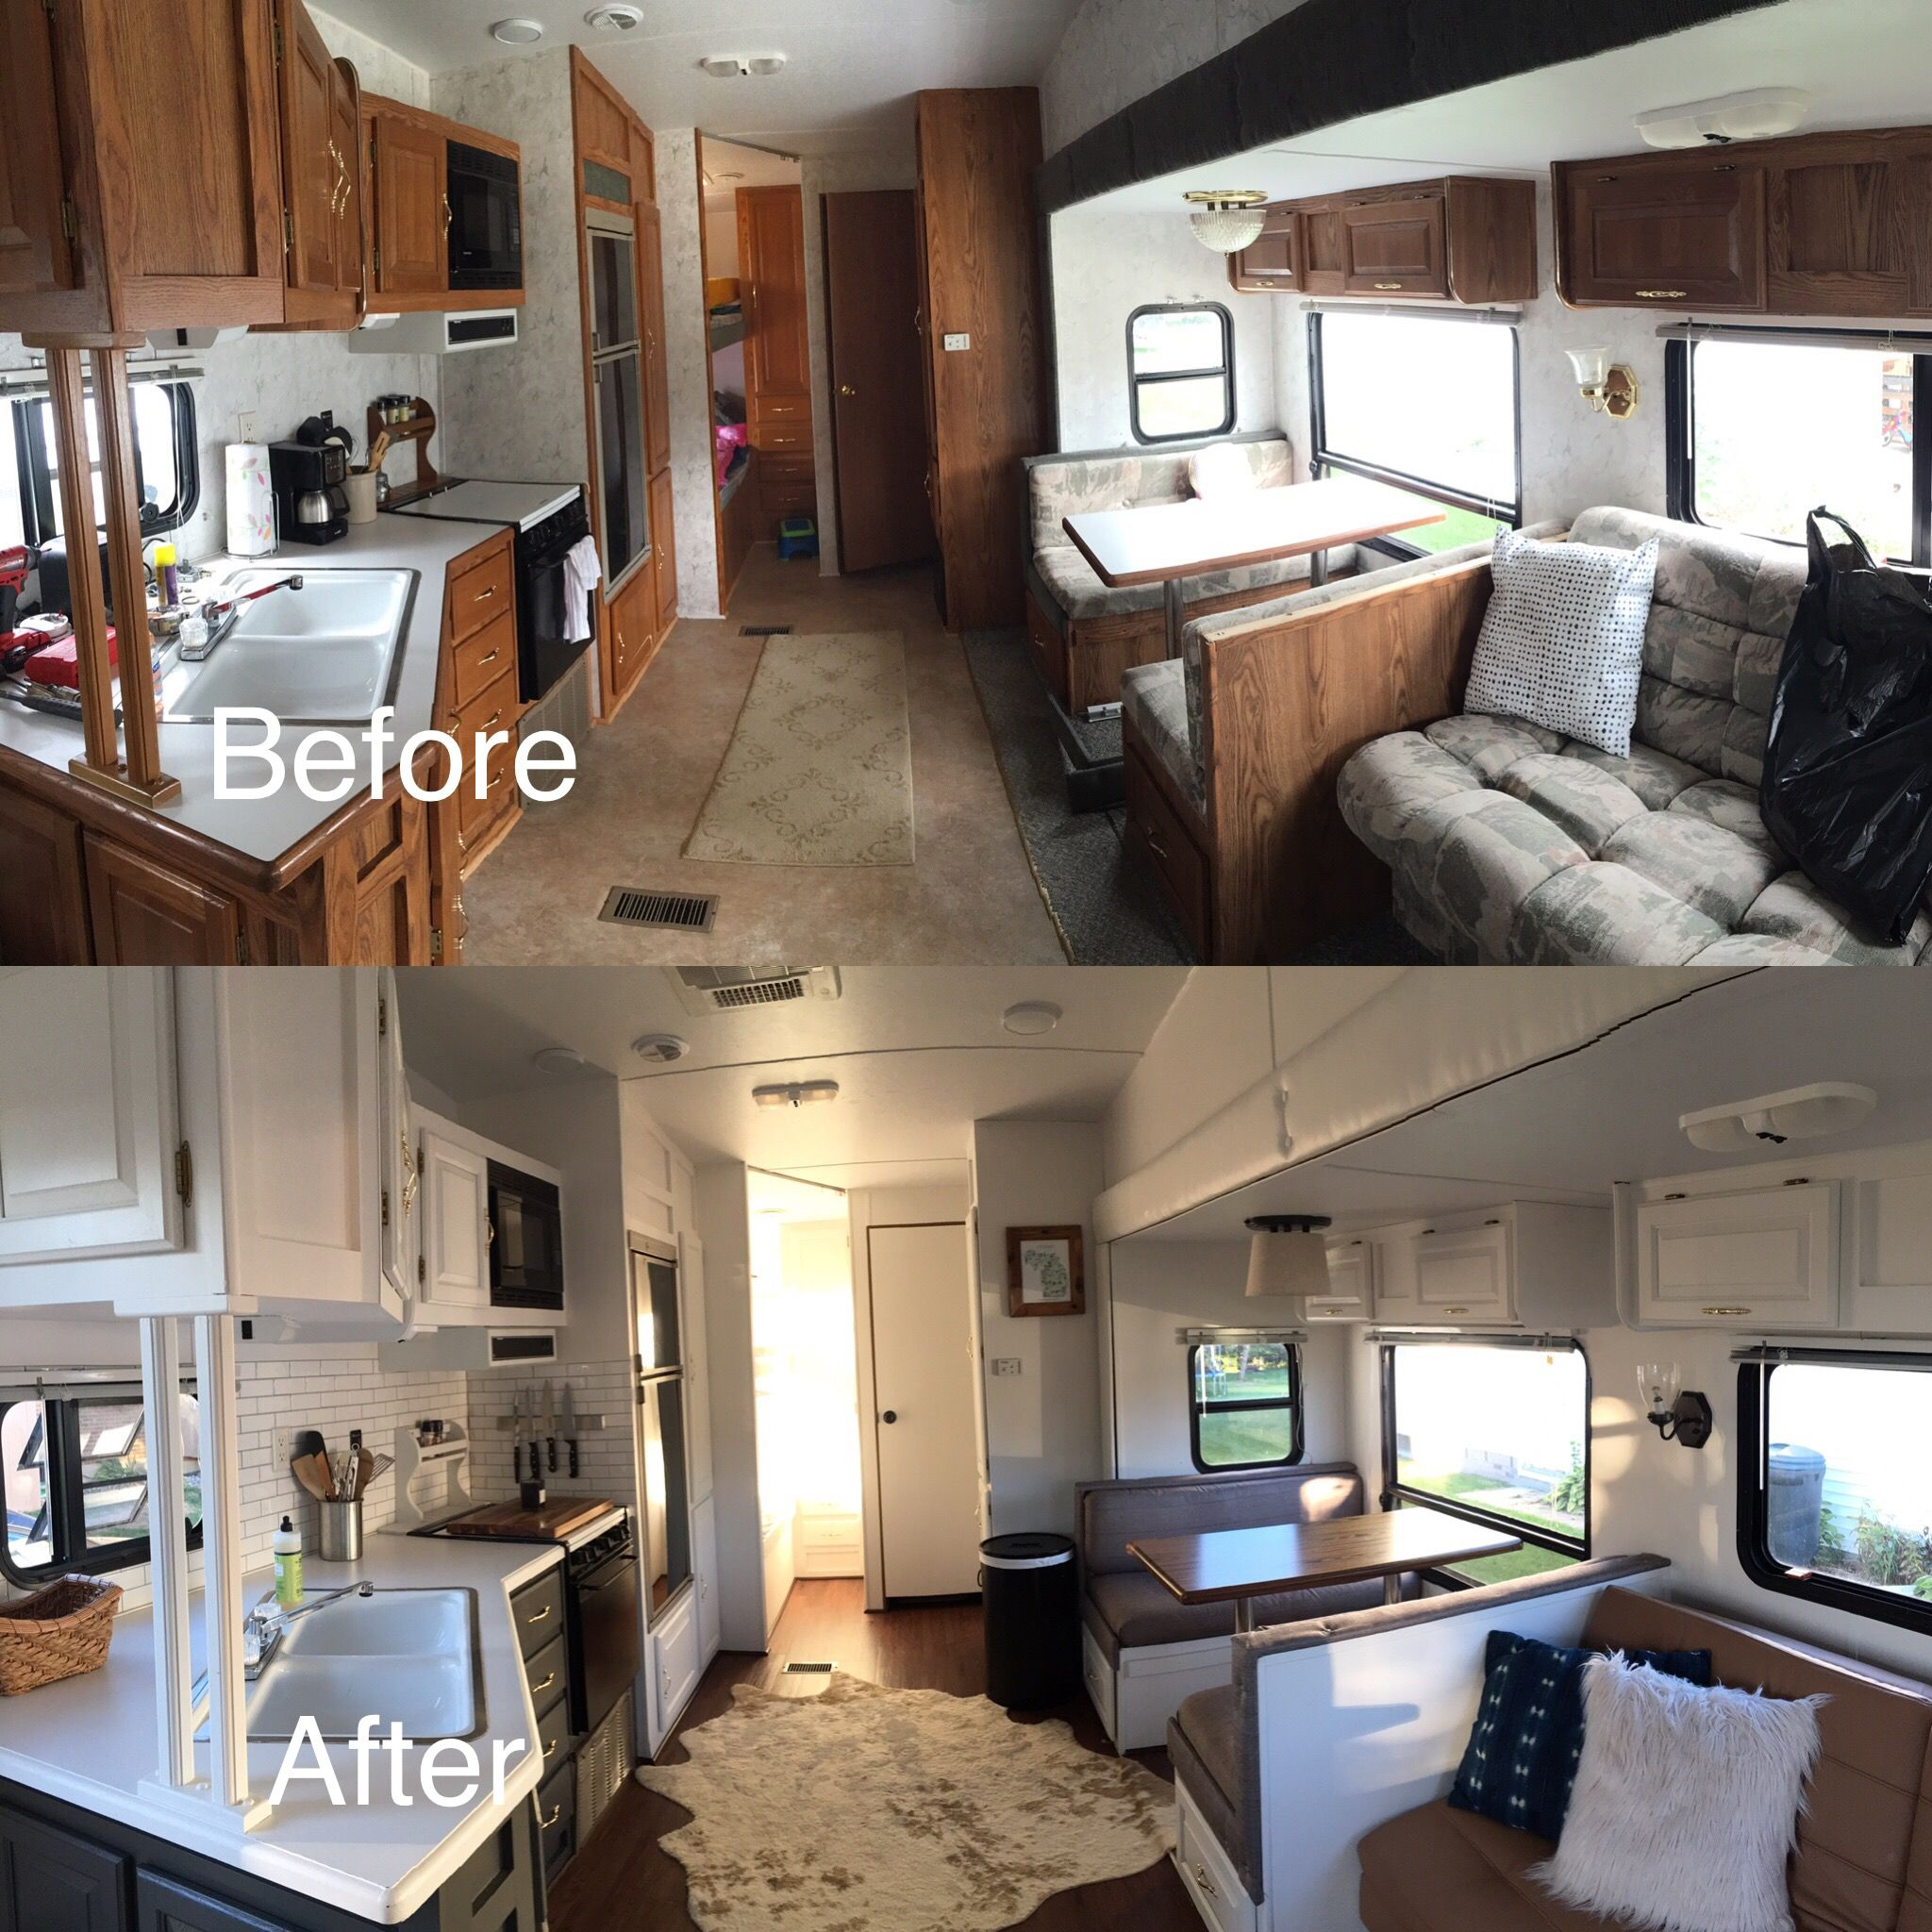 Modern rv interiors - Camper Interior Remodel Diy Travel Trailers Just About All Travel Trailers Utilize Wood Veneer This Will Go Quite A Way To Giving Your Family Campe